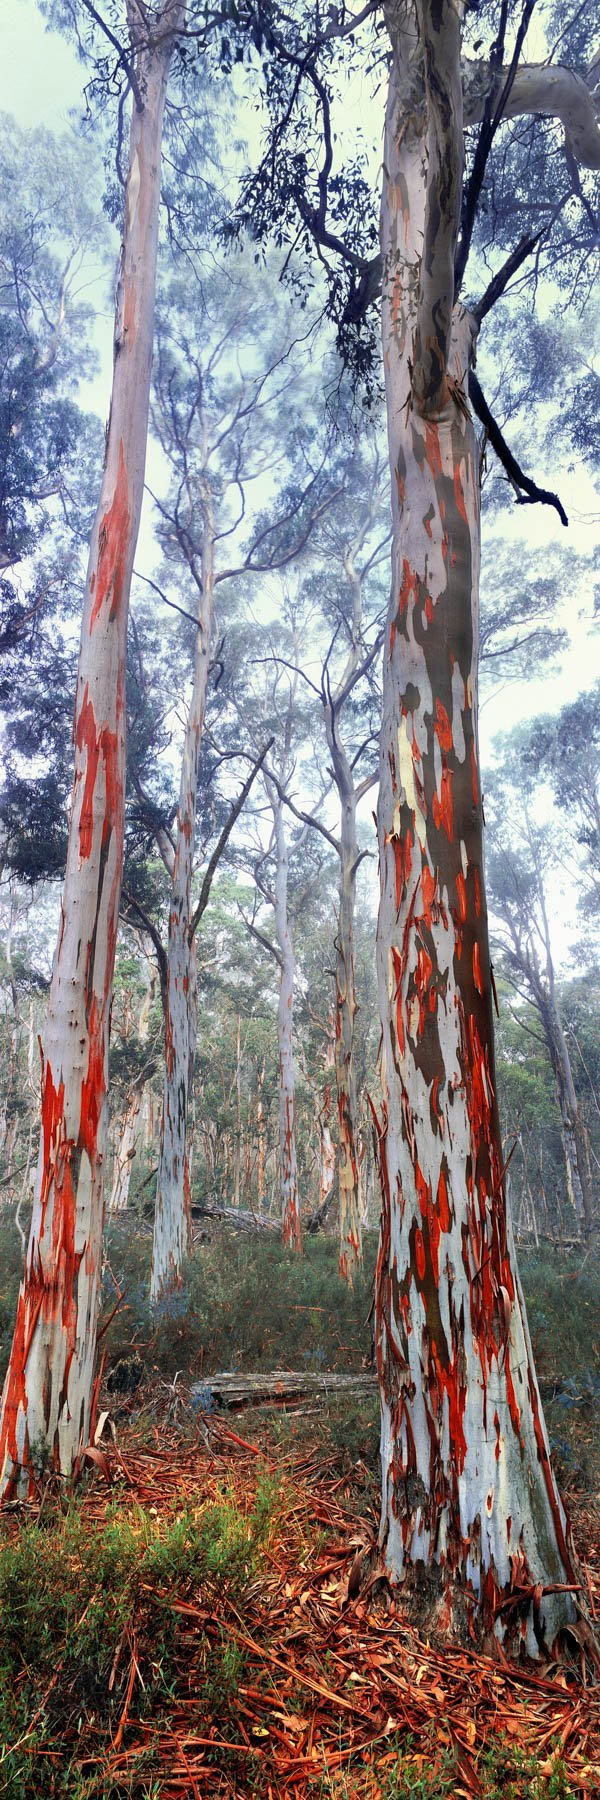 A touch of mist plays with the tree-tops in this dreamy view of a snow gum forest in Victoria's Alpine National Park, Australia.